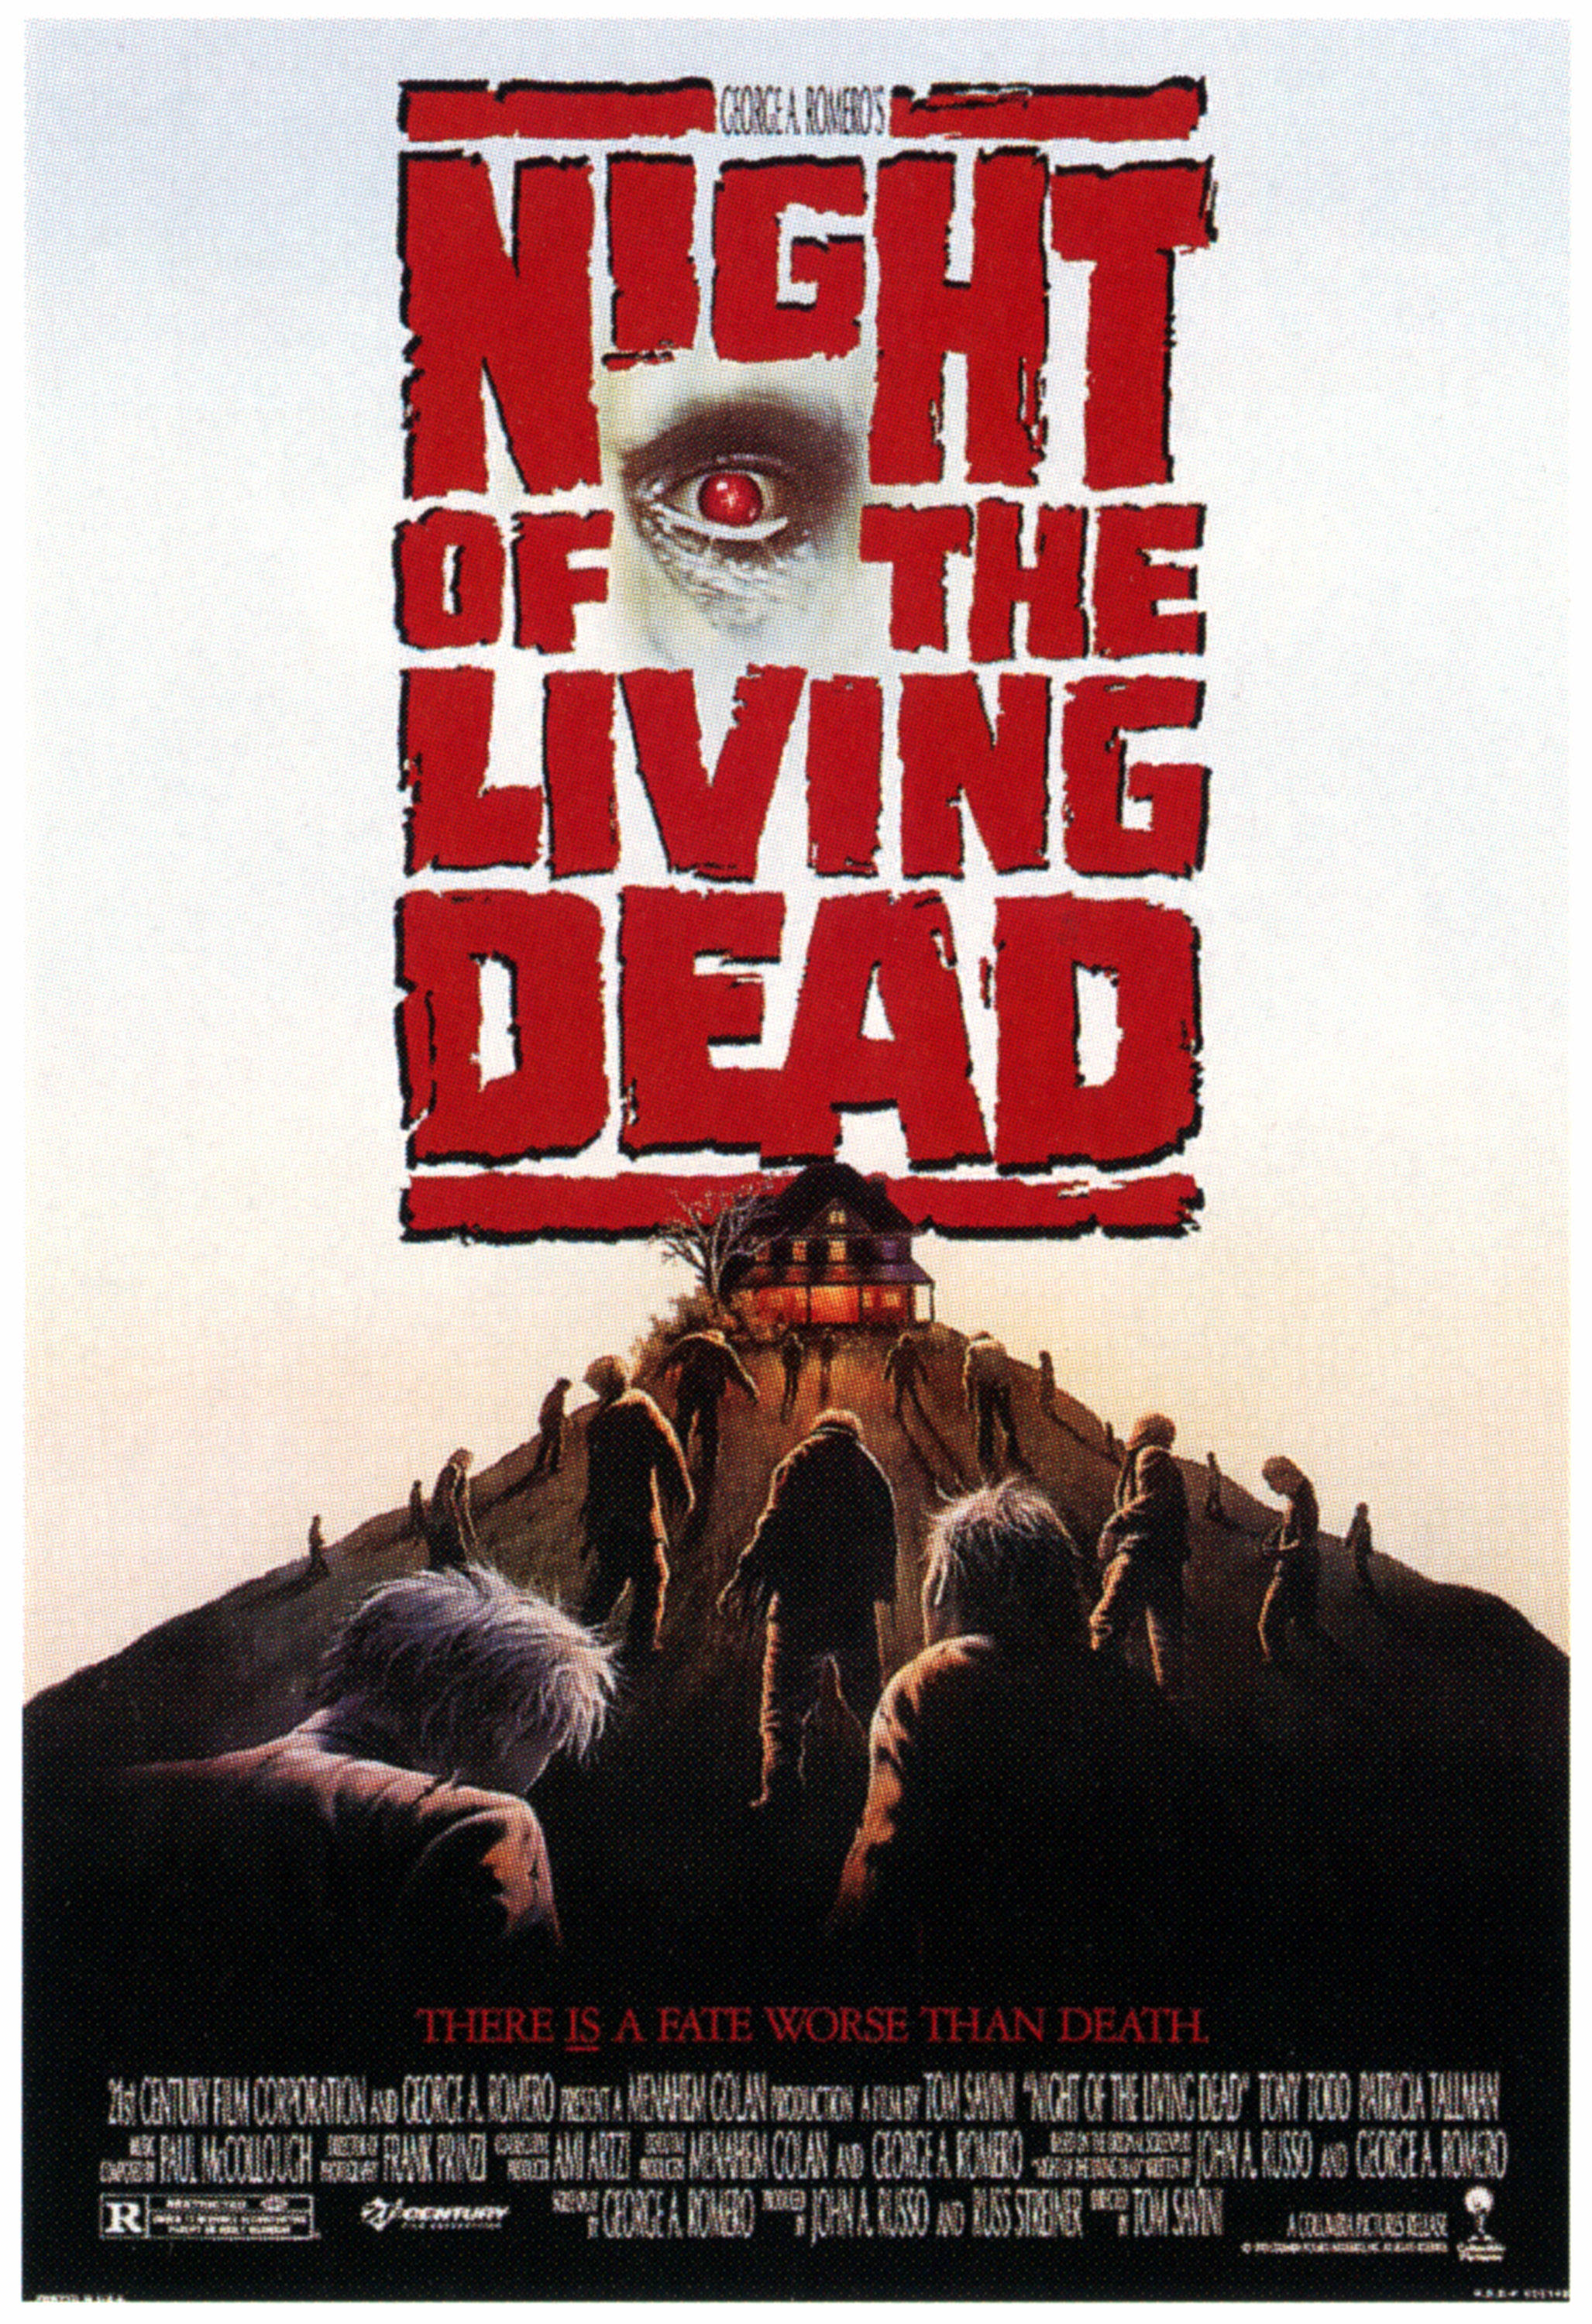 10. Night of the Living Dead (1990)